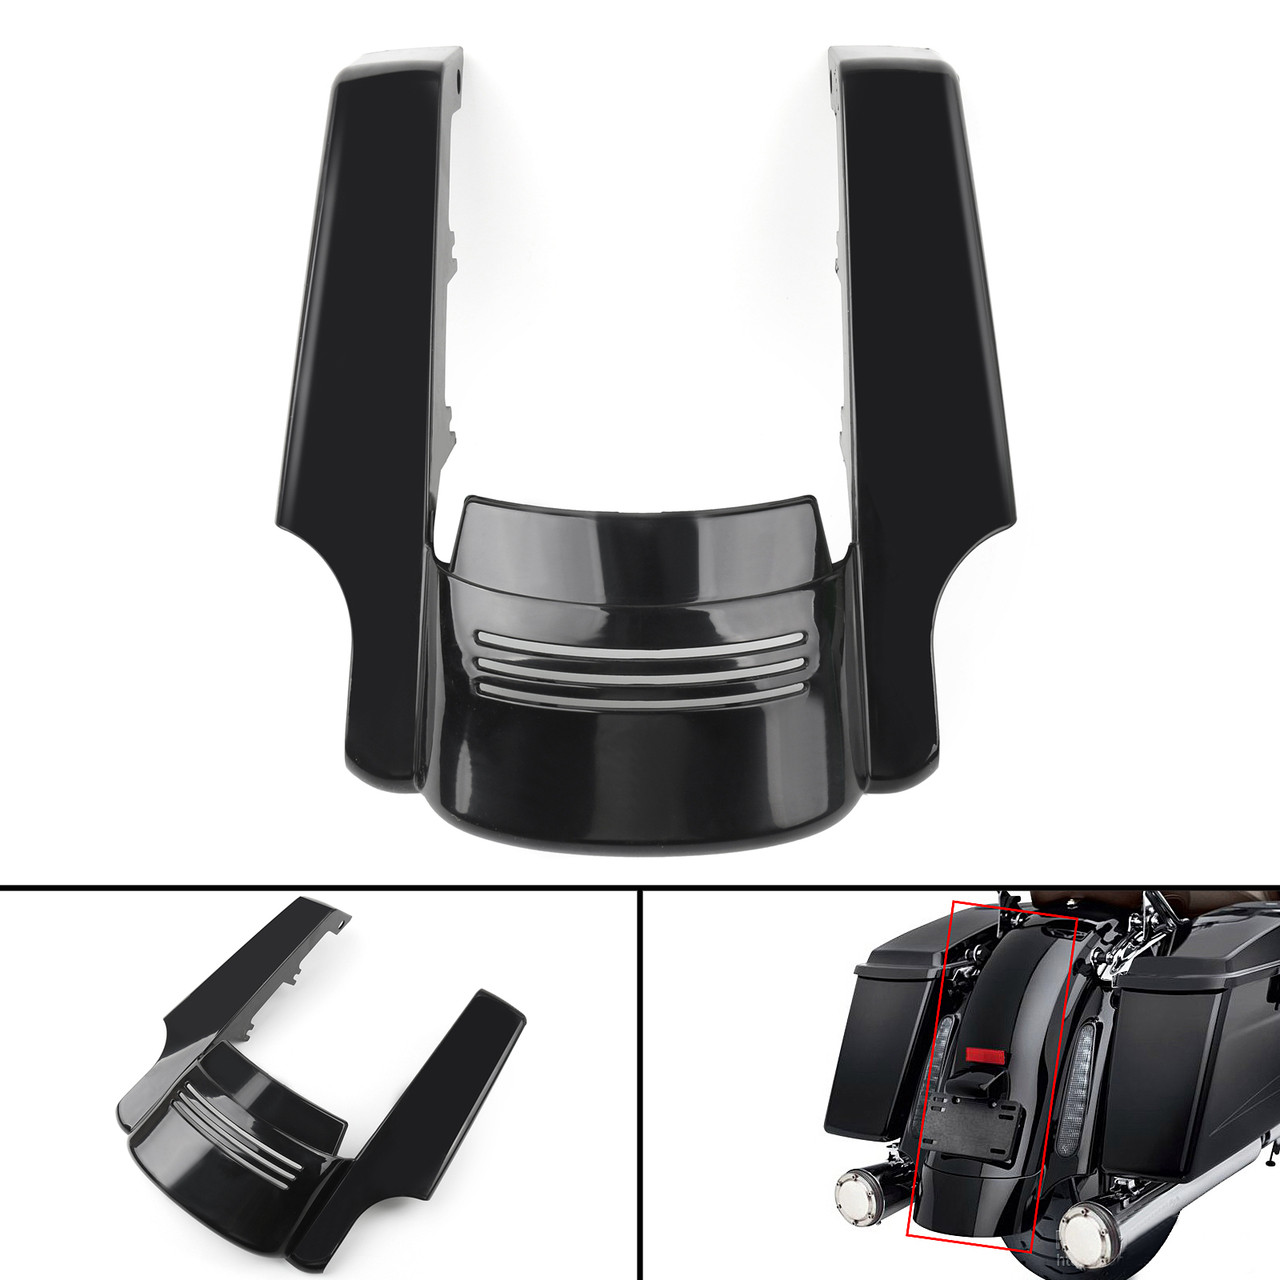 Stretched Rear Fender Extension For Harley Touring Street Road Glide (14-17)